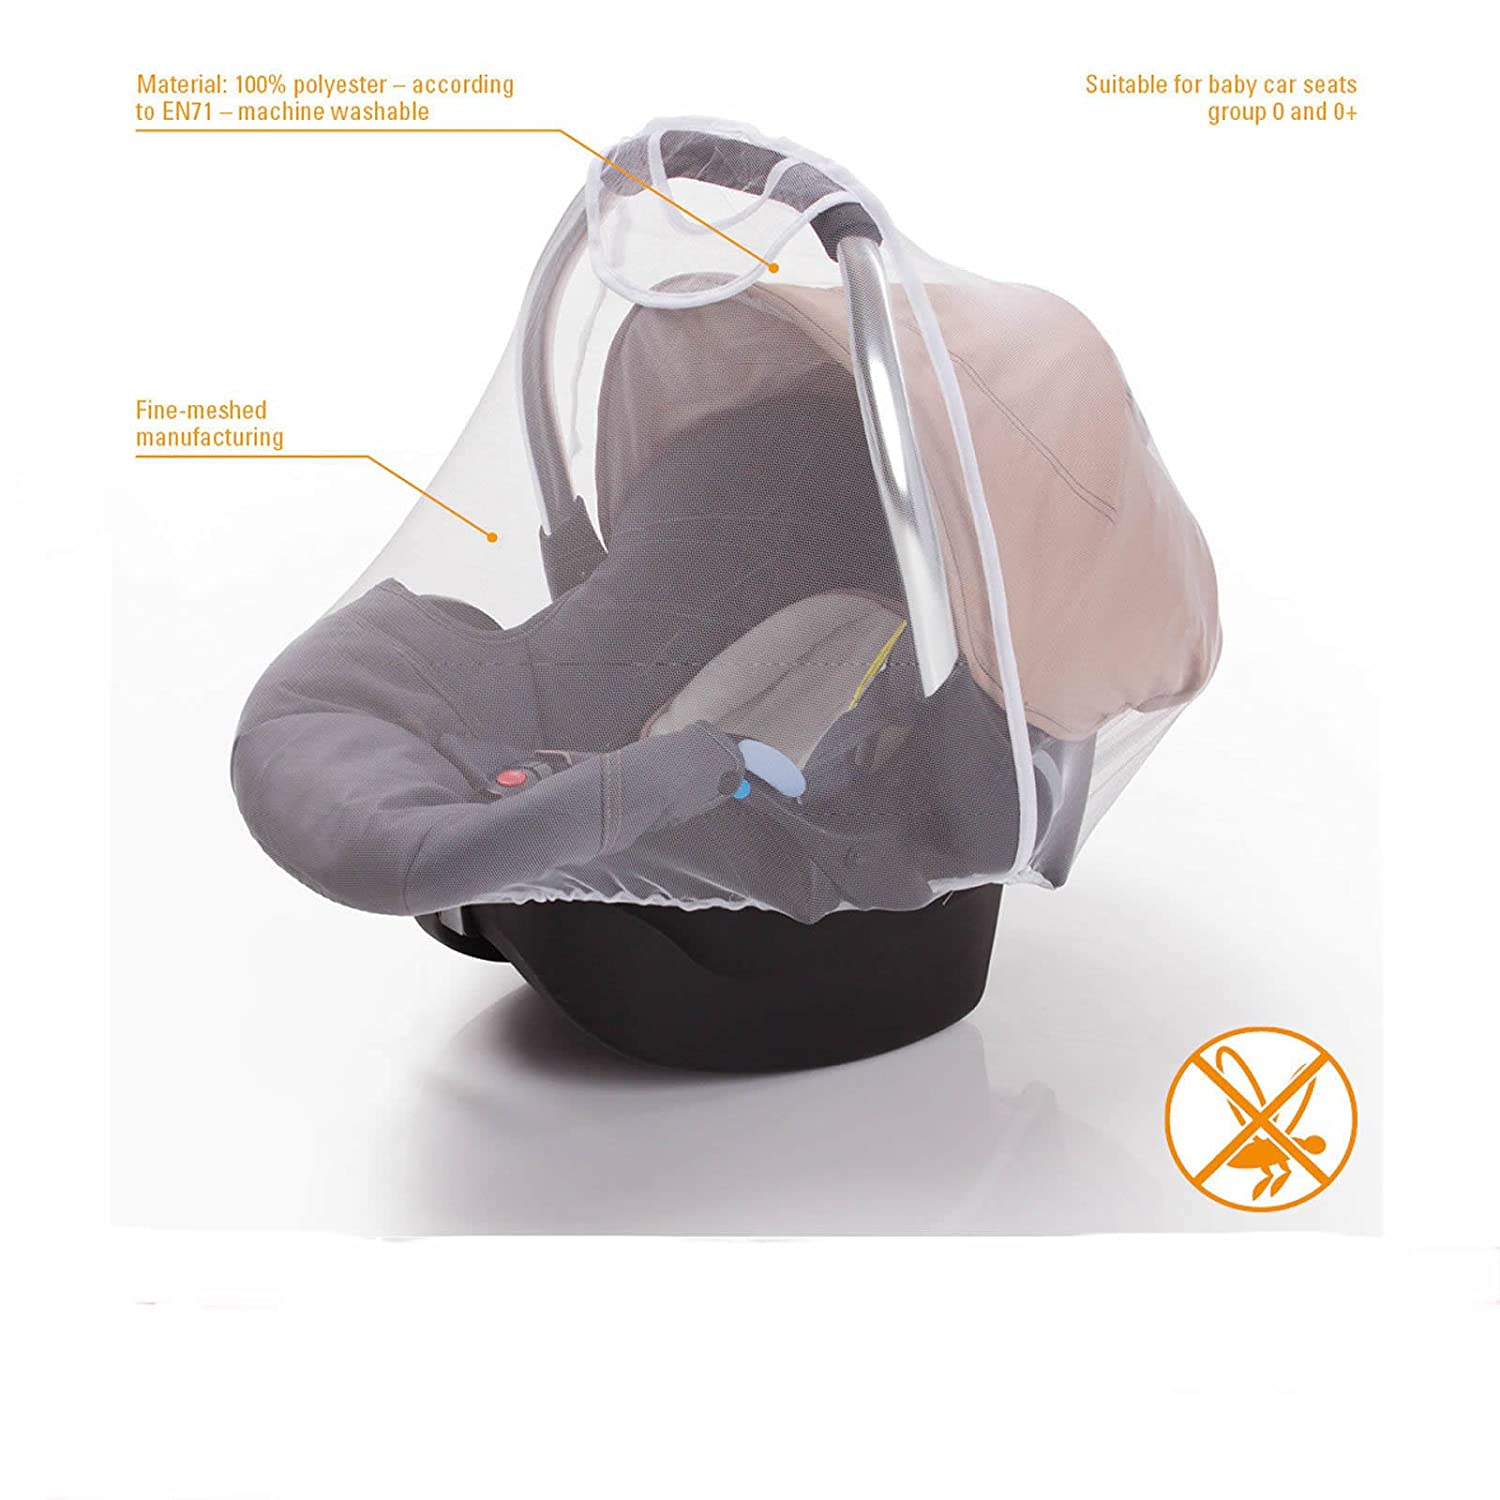 Diago Uk Exclusive Universal Mosquito/Insect Net for Car seat